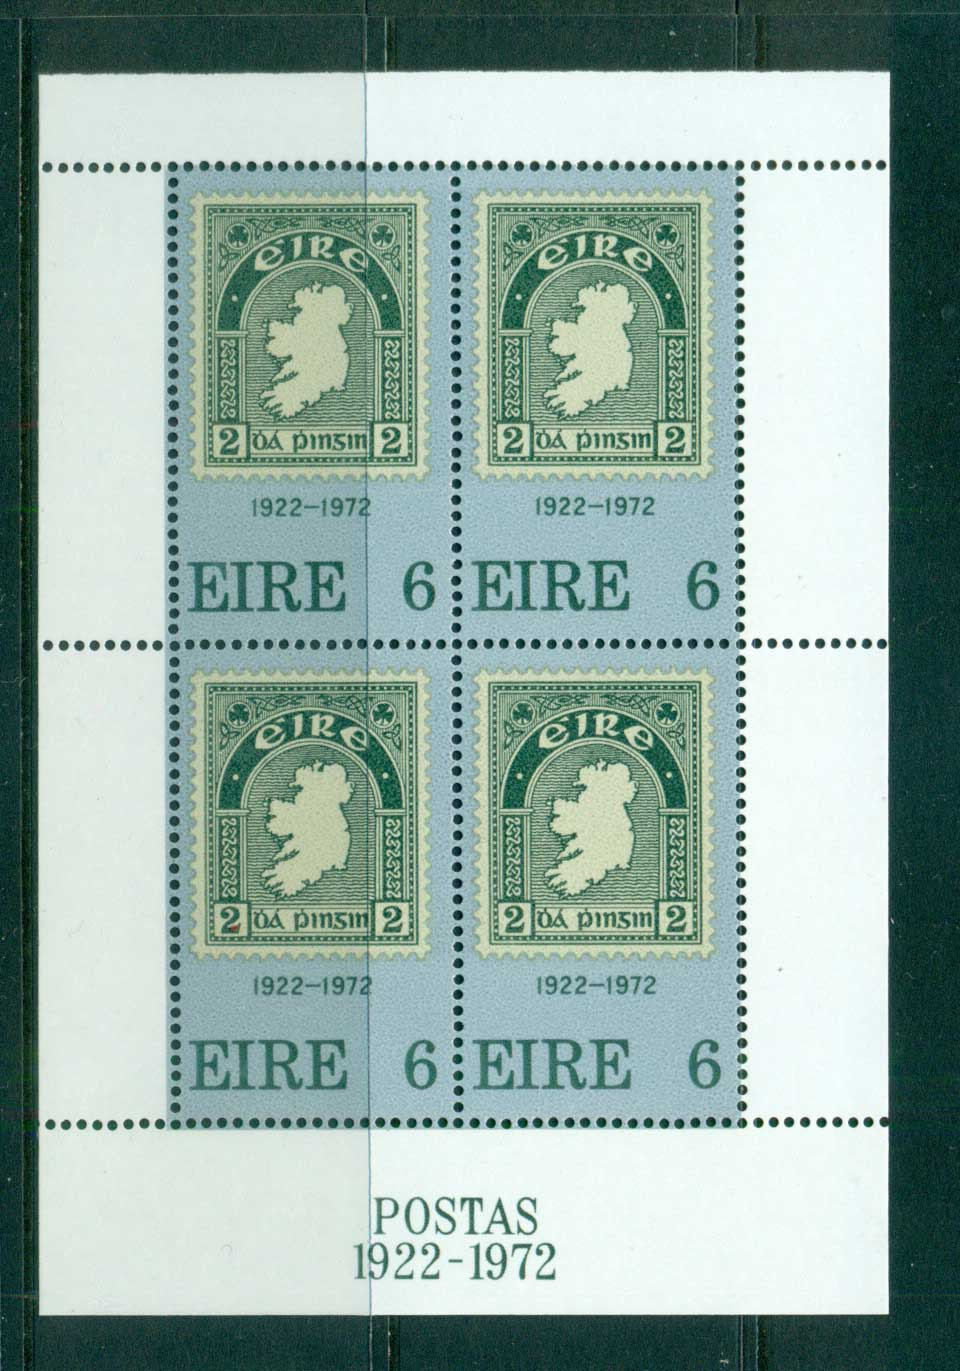 Ireland 1972 Postage Stamp Anniv. MS MUH lot57378